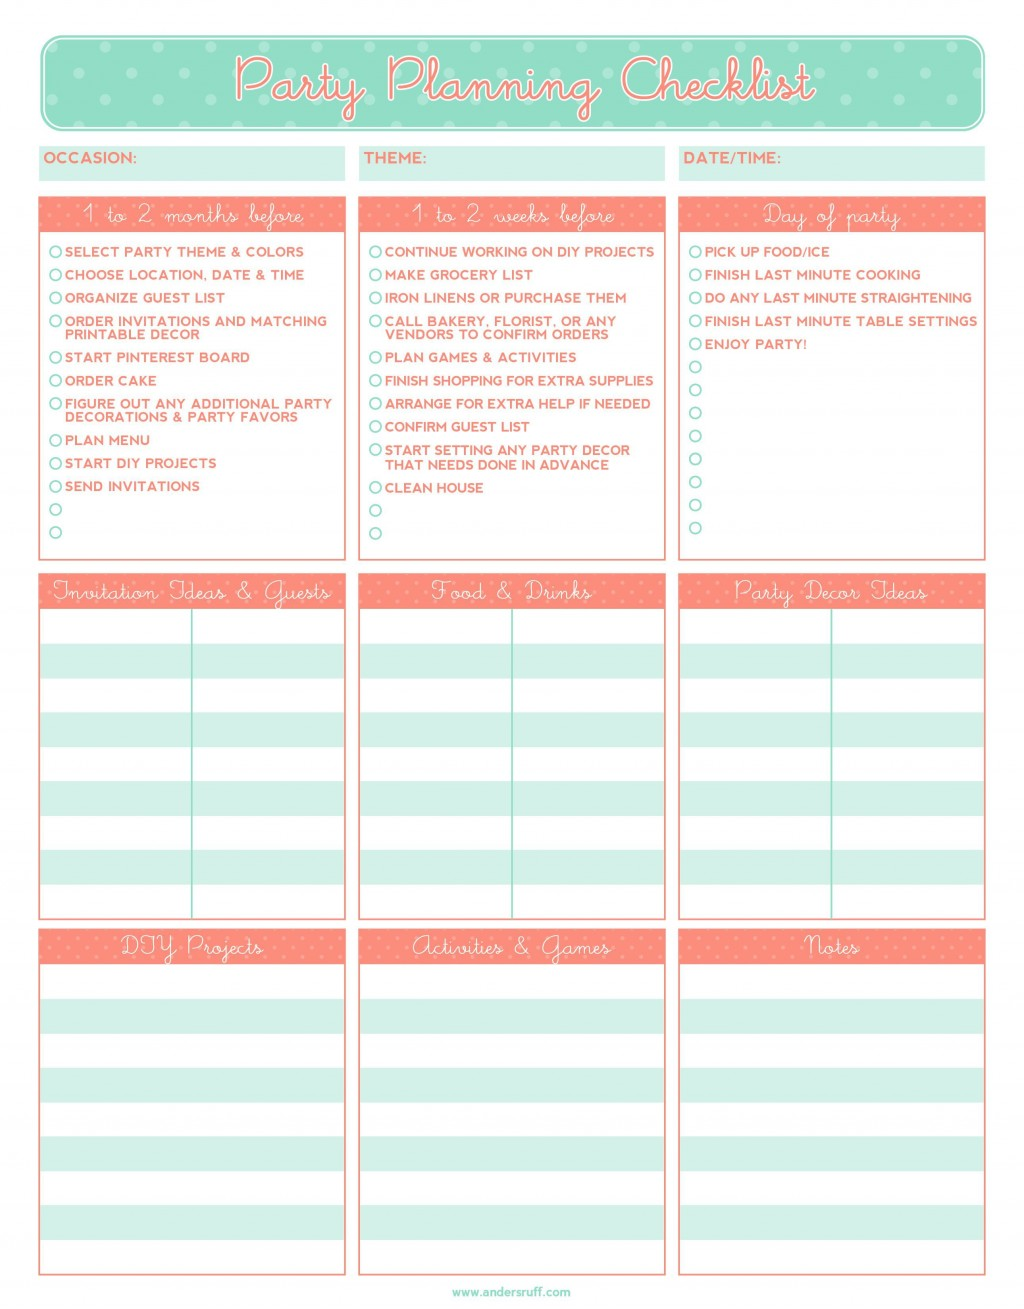 003 Exceptional Party Plan Checklist Template High Resolution  Planning Free Graduation BirthdayLarge